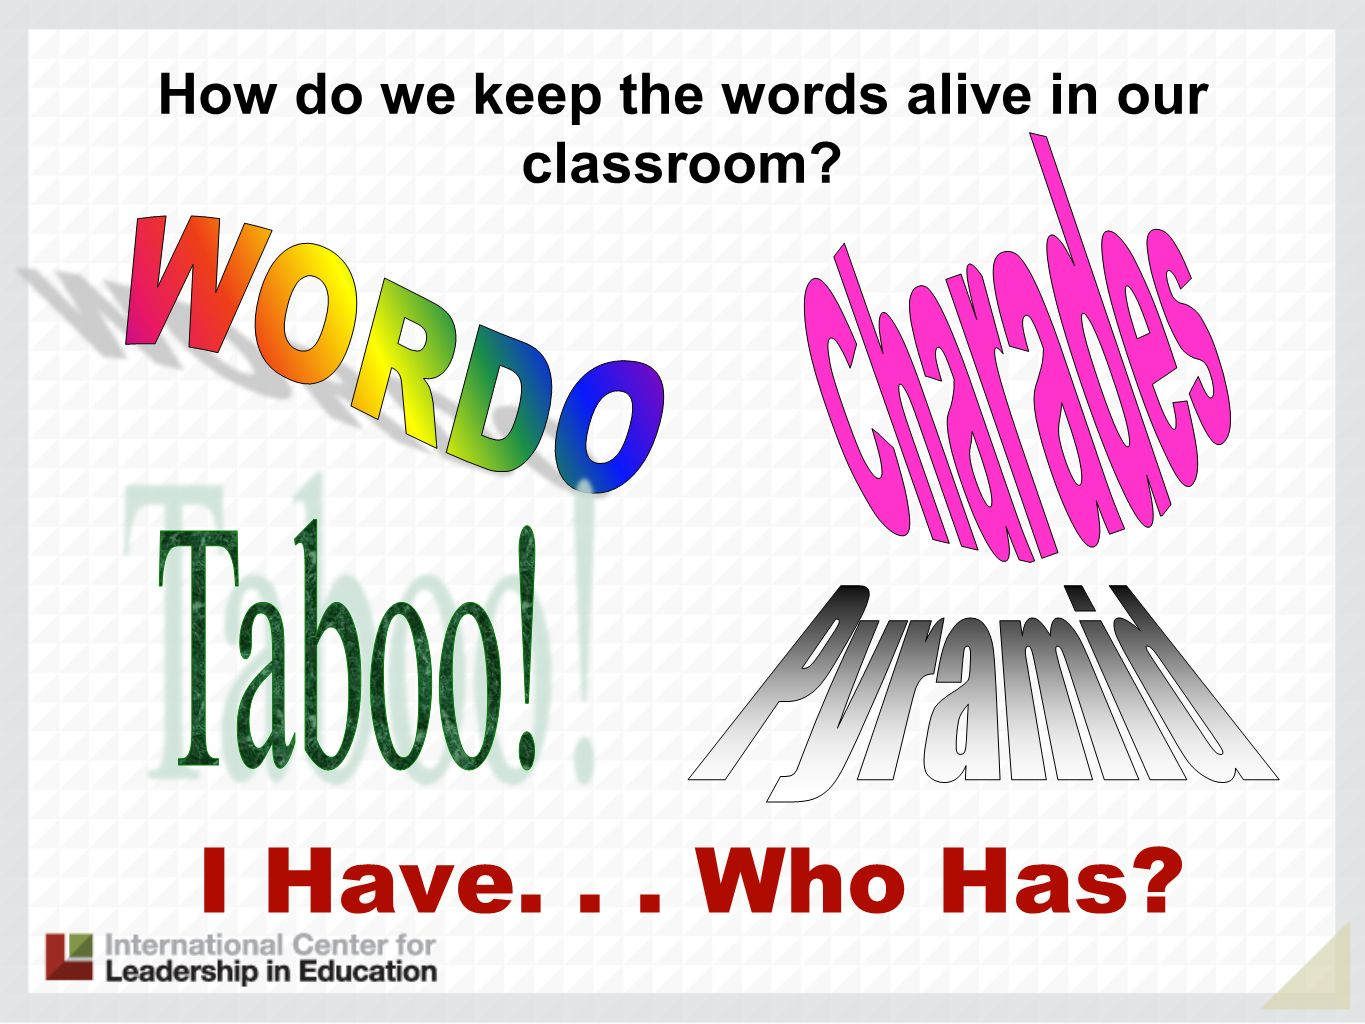 How do we keep the words alive in our classroom